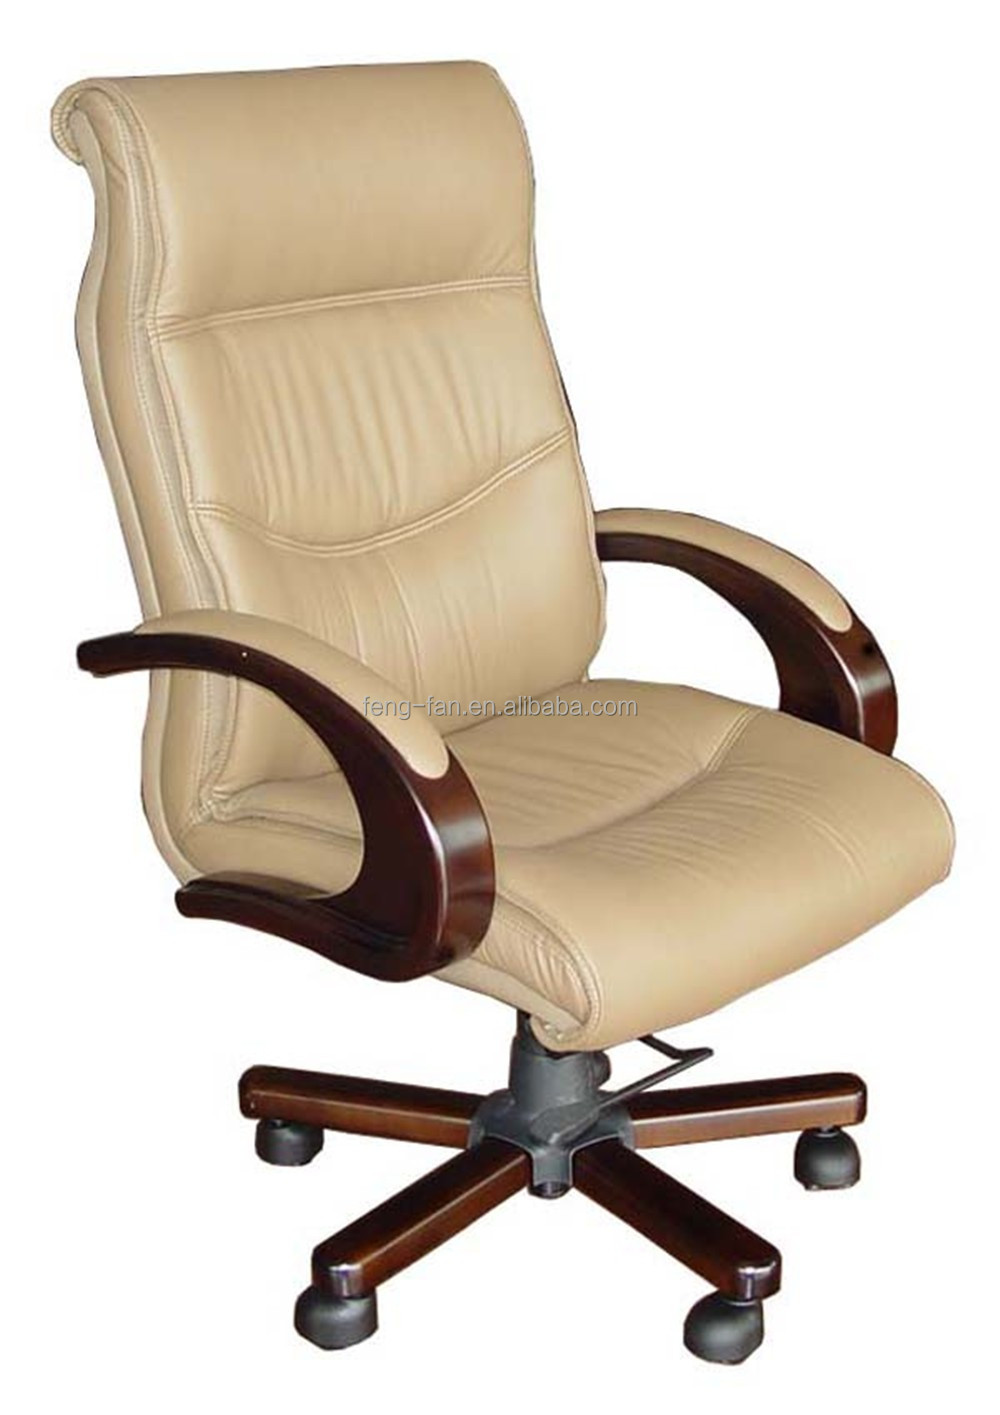 Cream color executive swivel office chair / office furniture / task chair with locking mechanism